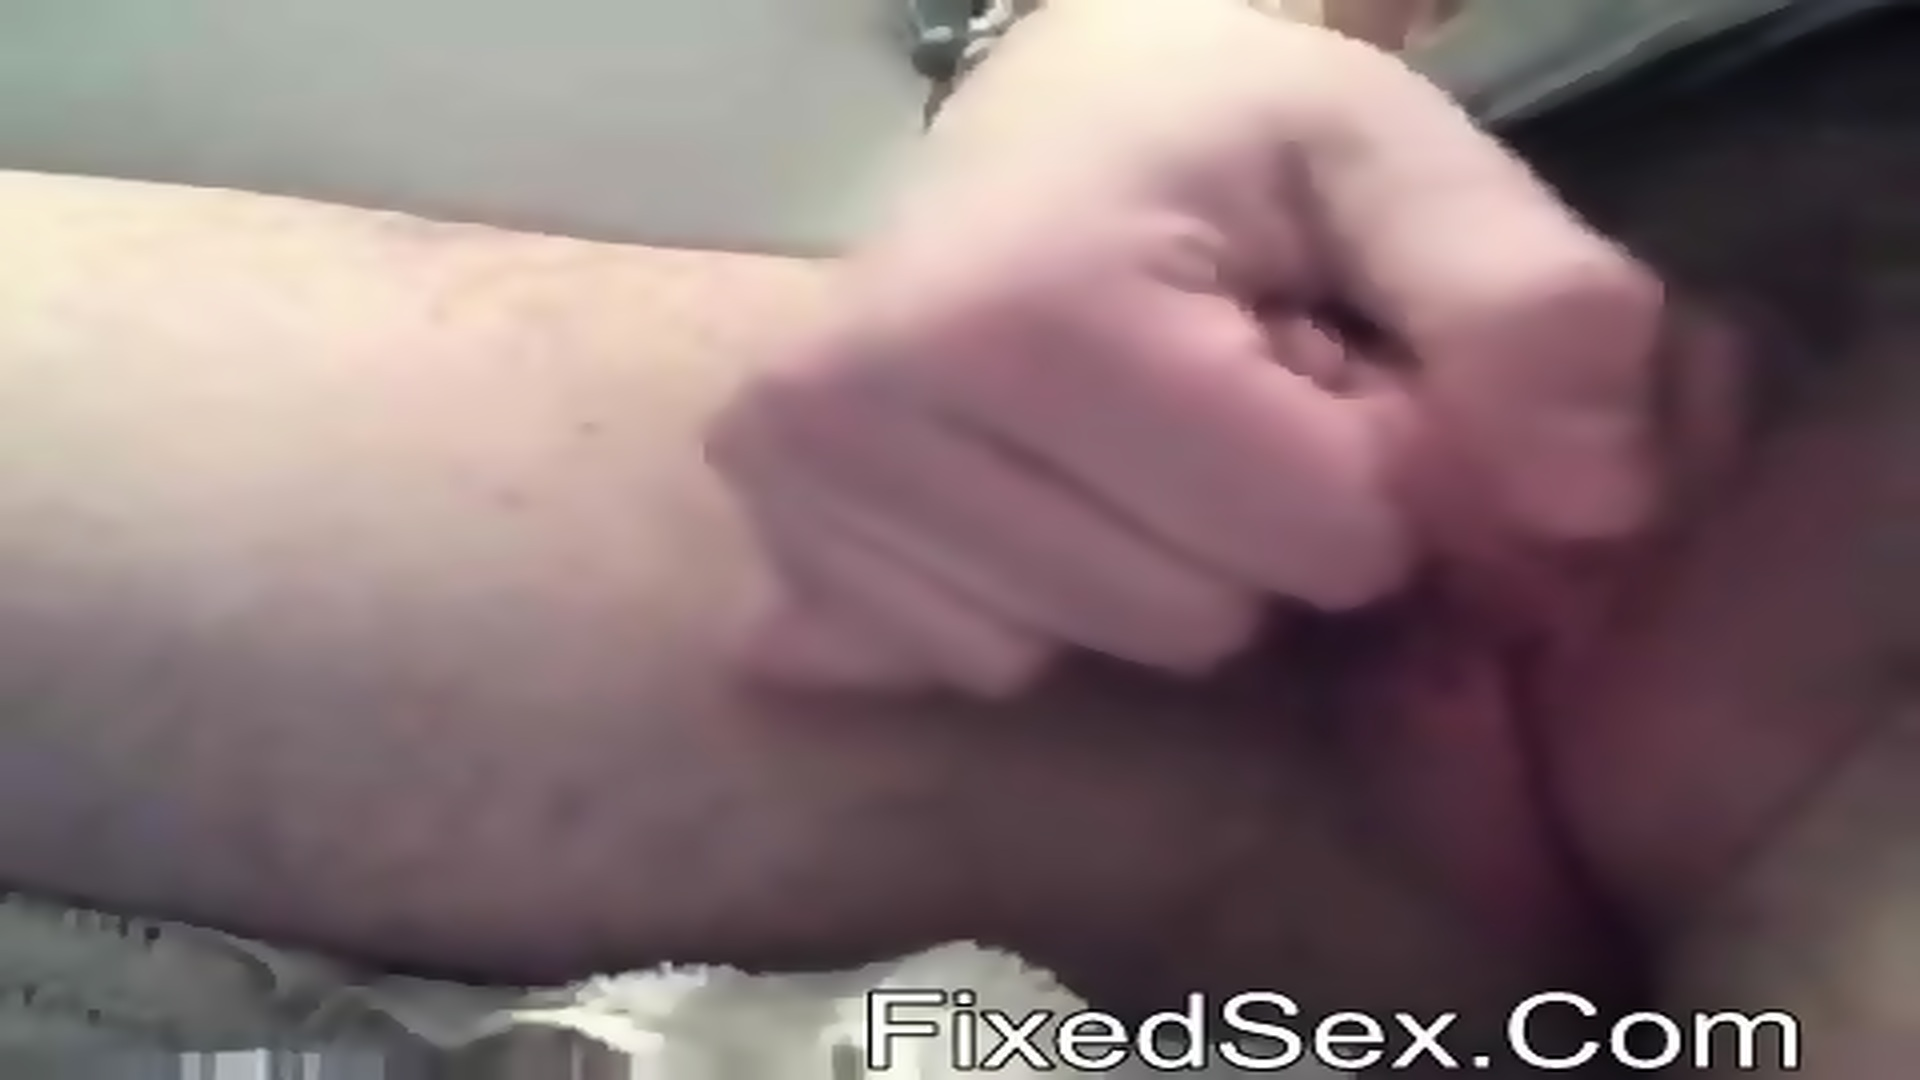 will not begin amateur facial cumshot swallow compilation agree, this